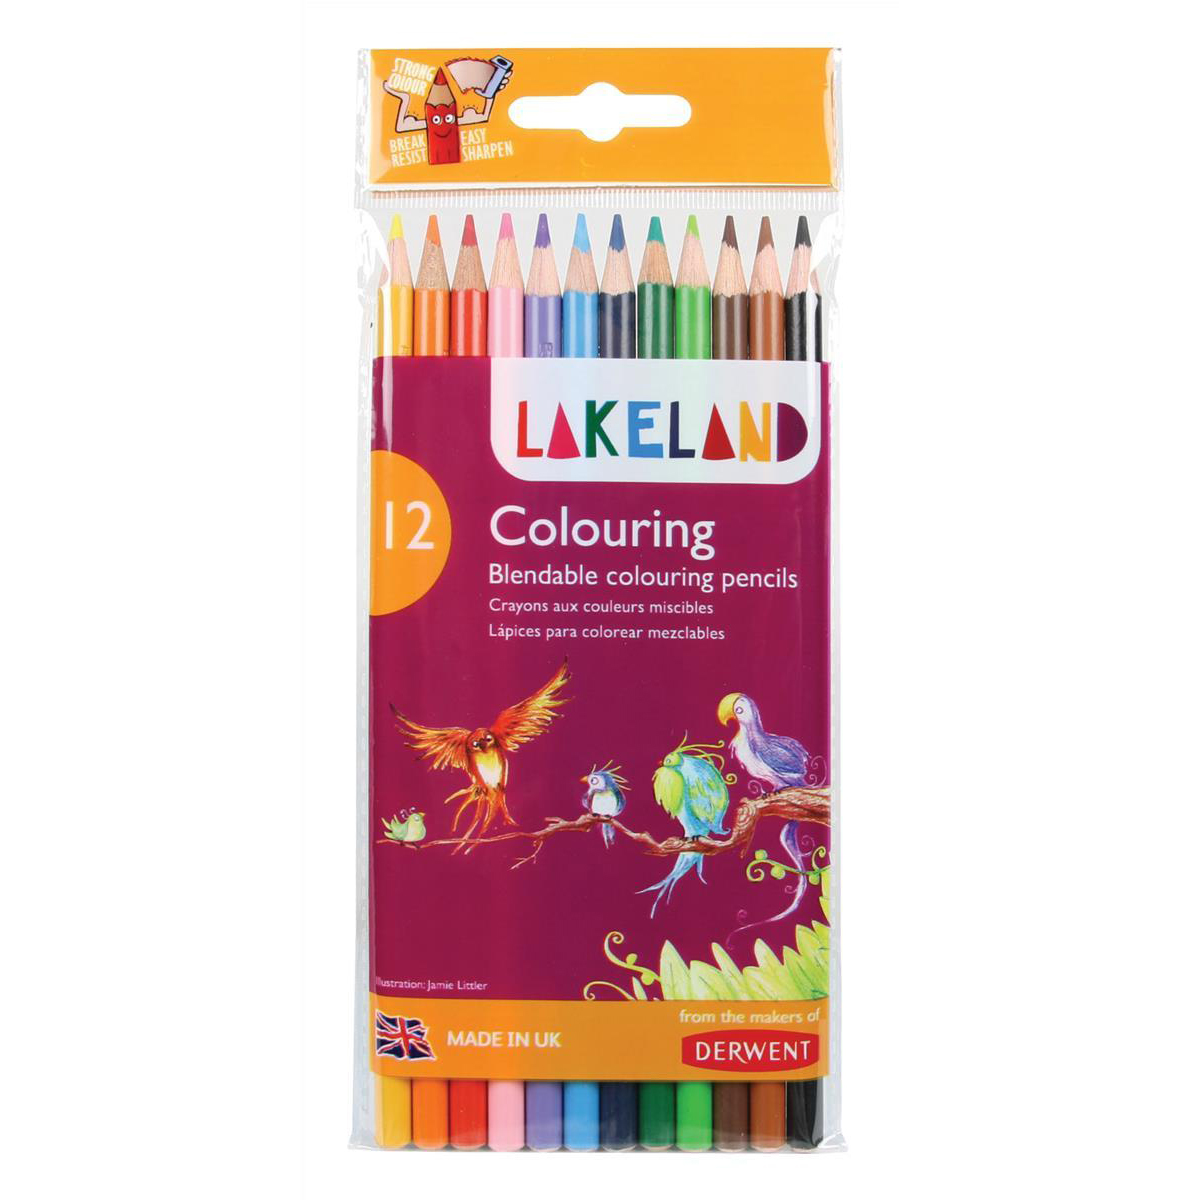 Pencils (Wood Case) Lakeland Colouring Pencils Round-barrelled Soft Blendable Wallet Assorted Ref 33356 Pack 12